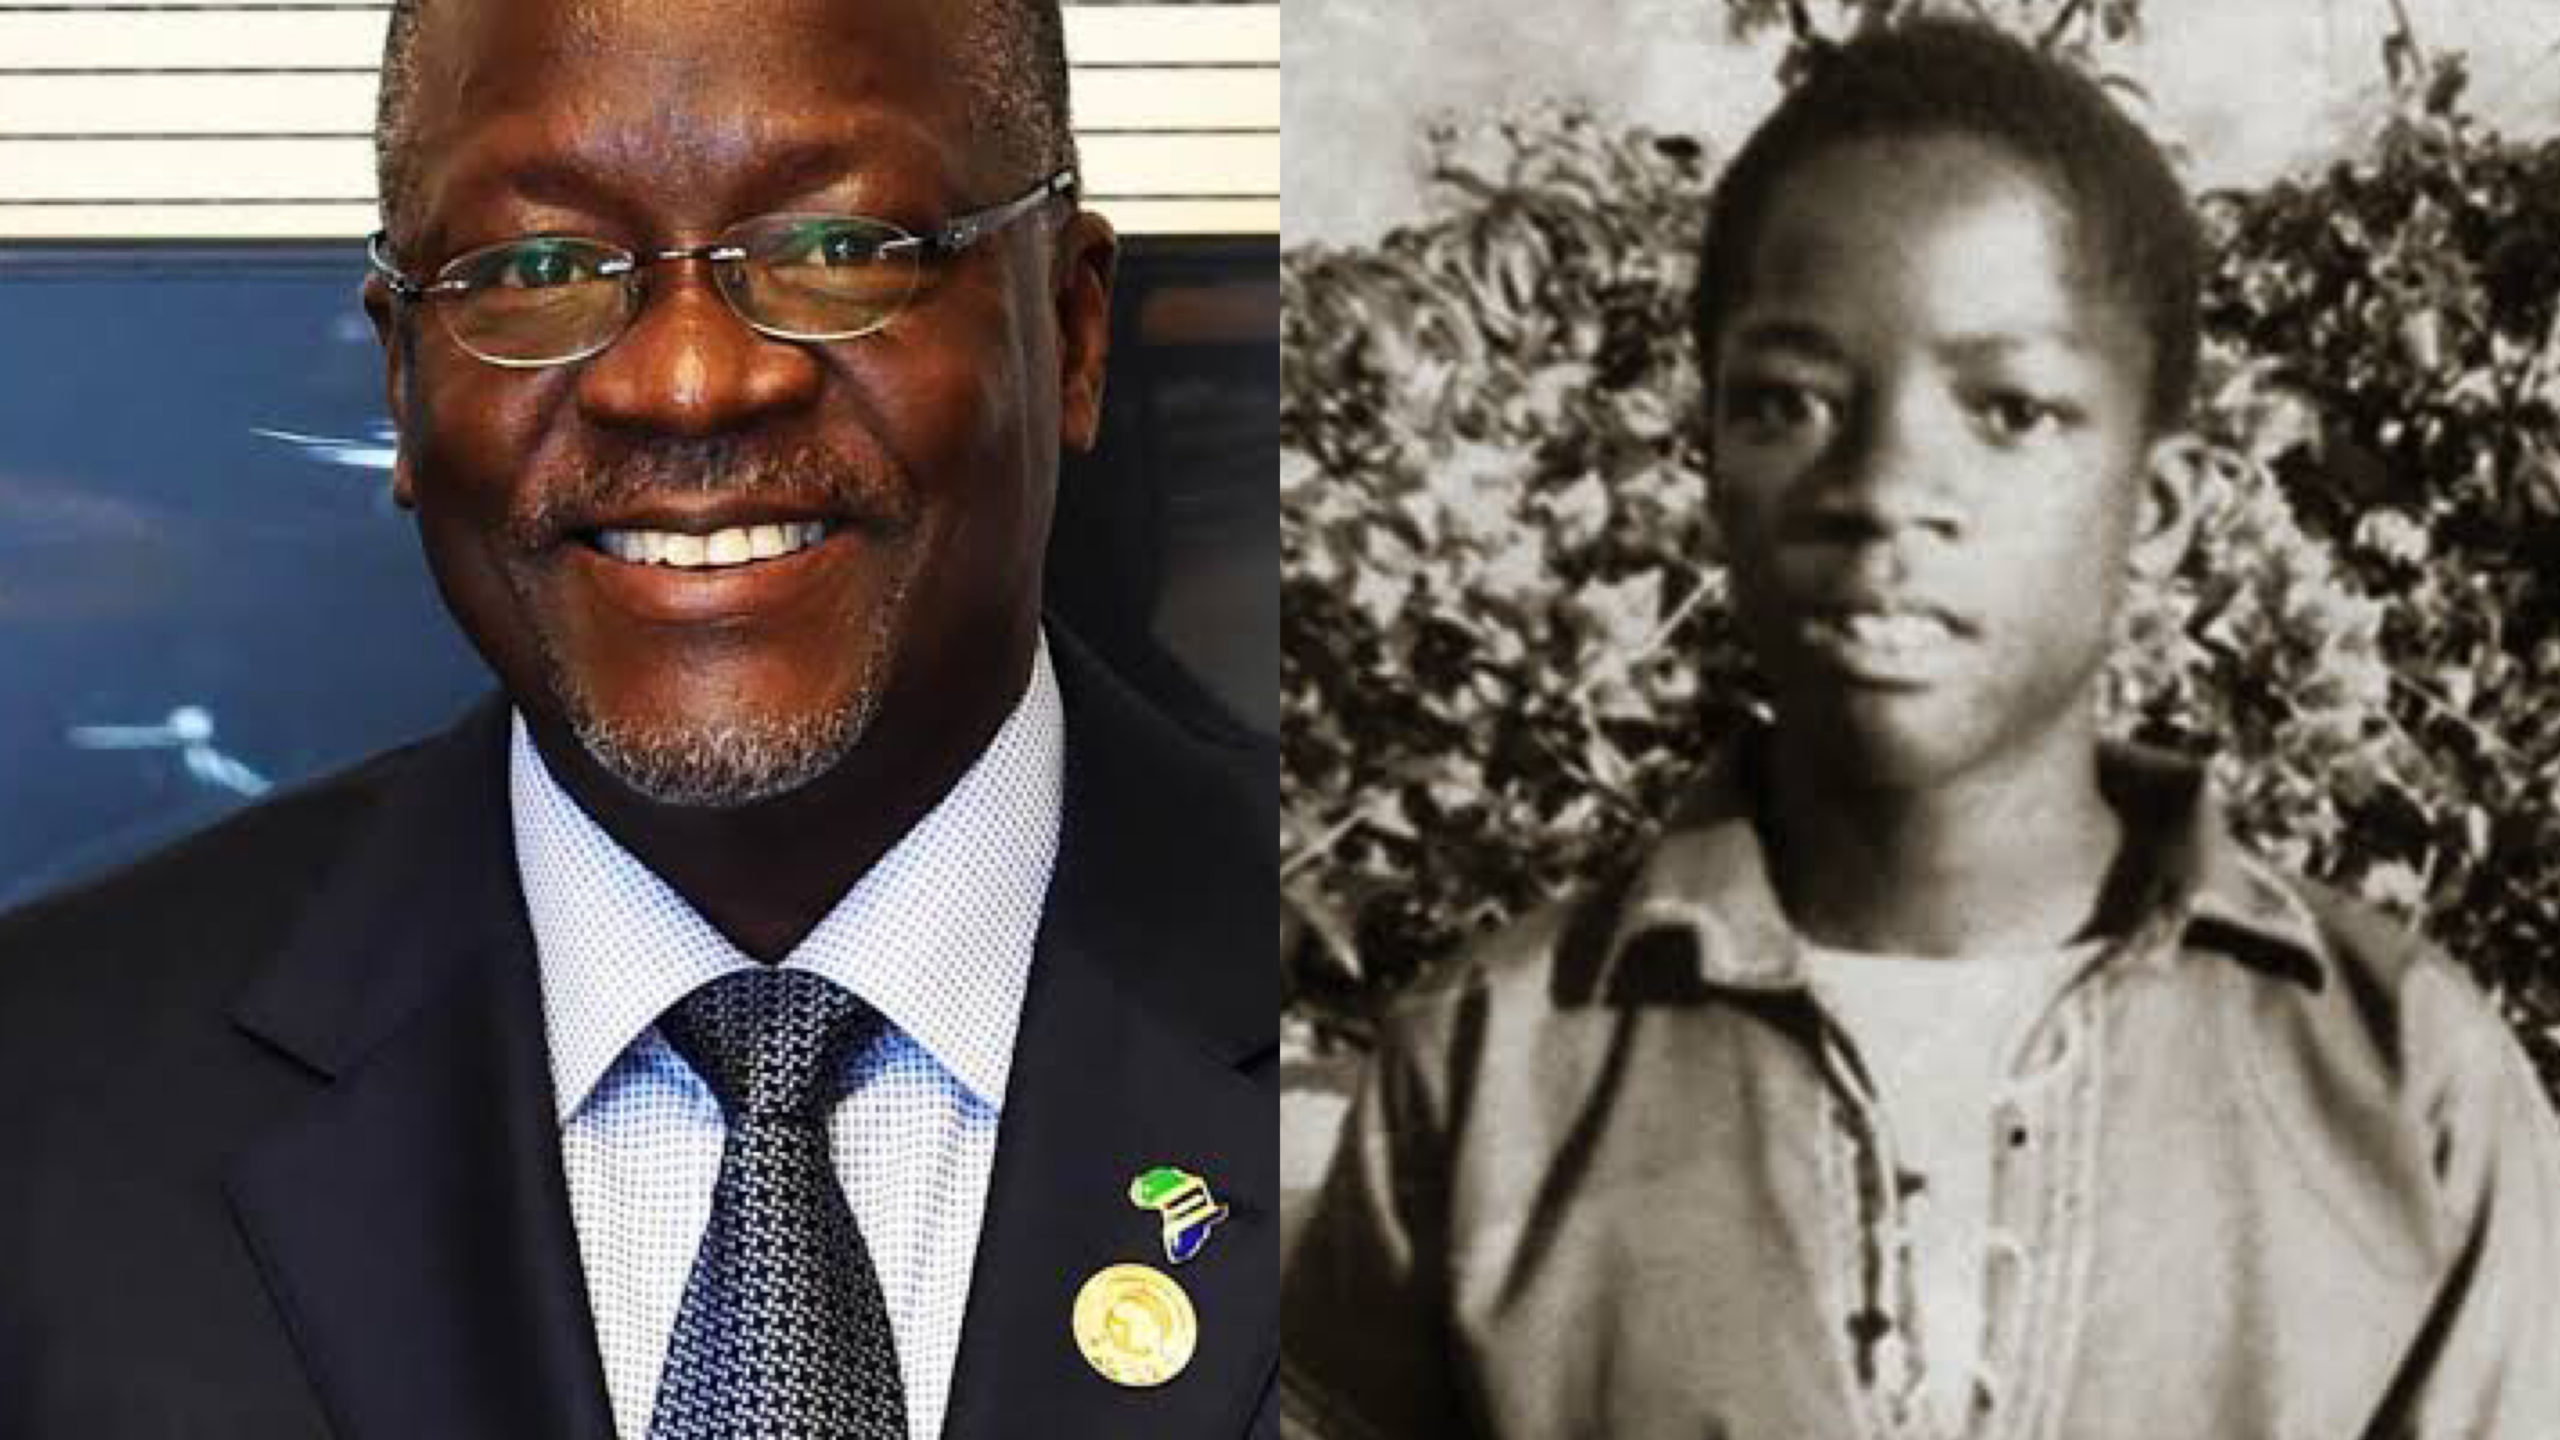 Rest In Power: 4 handsome photos of young energetic John Pombe Magufuli from back in the day